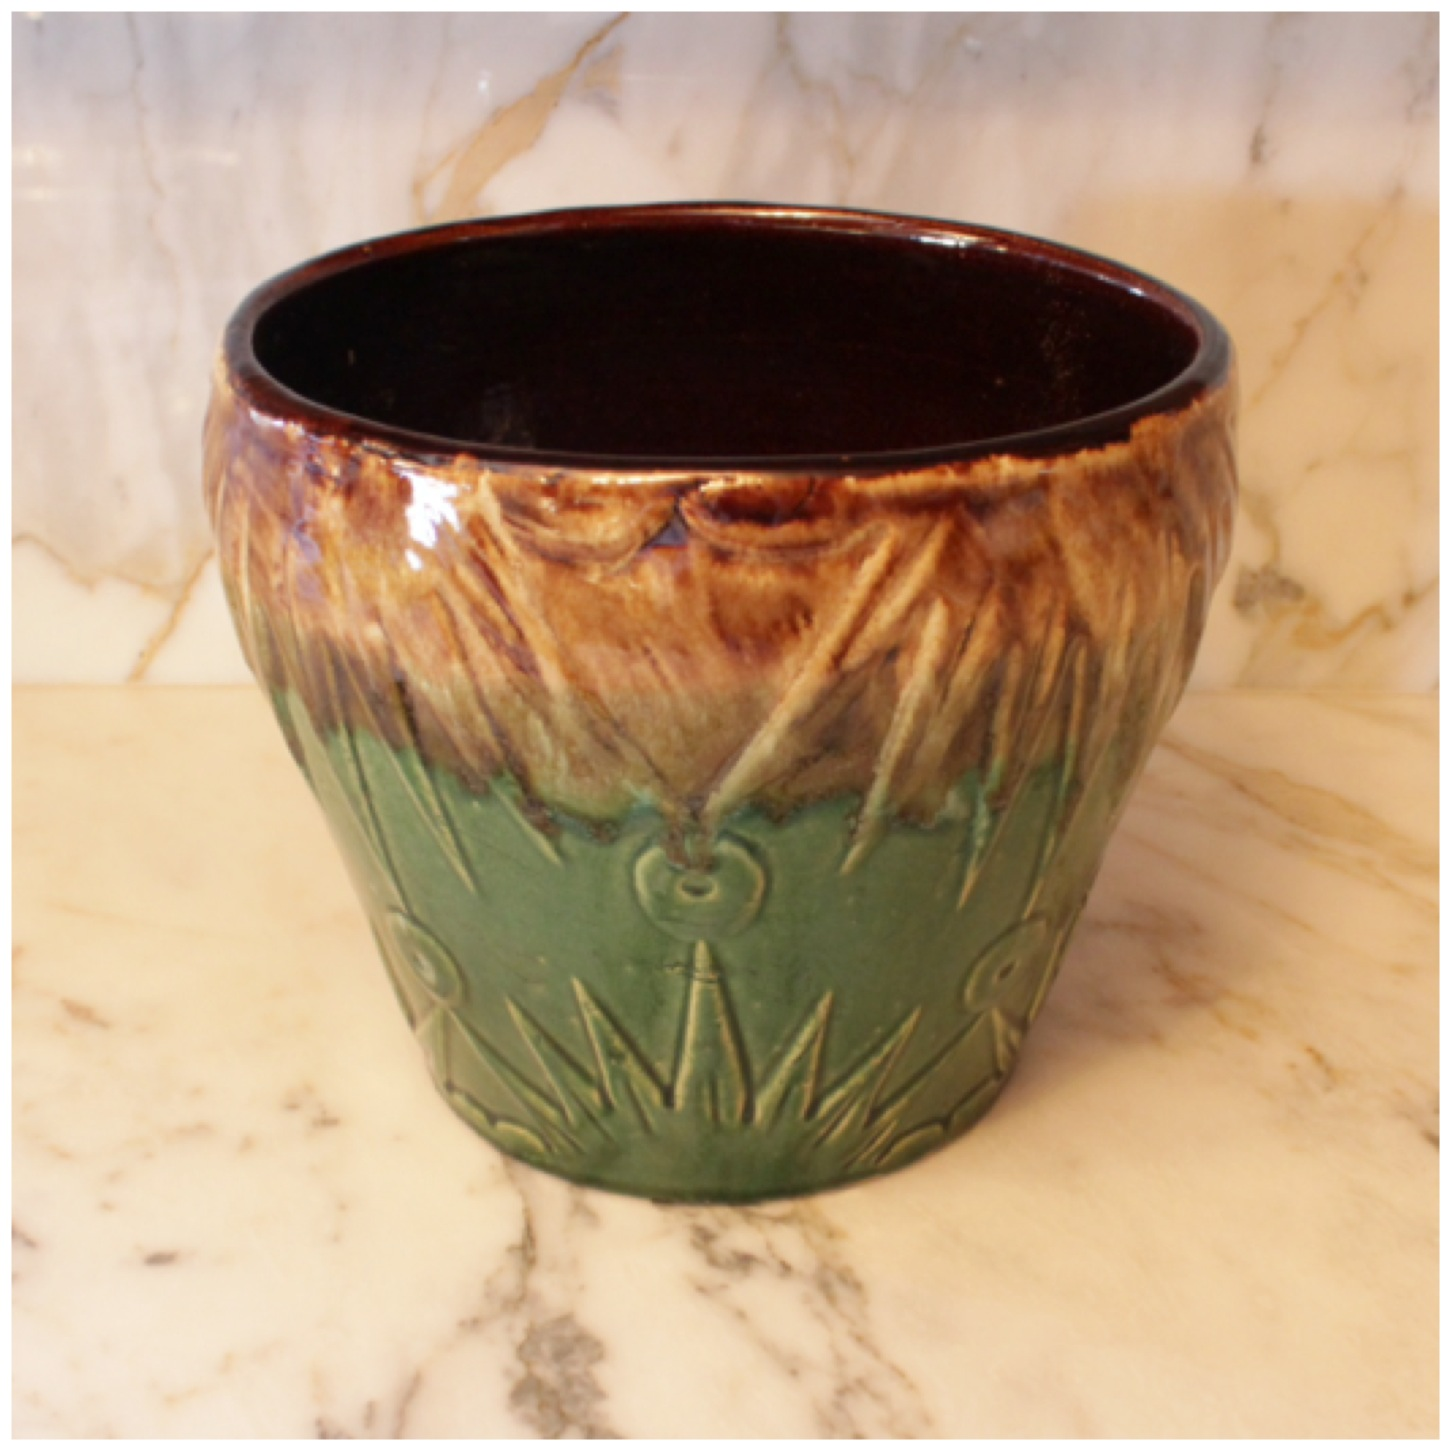 M6565 Roseville Pottery Jardiniere